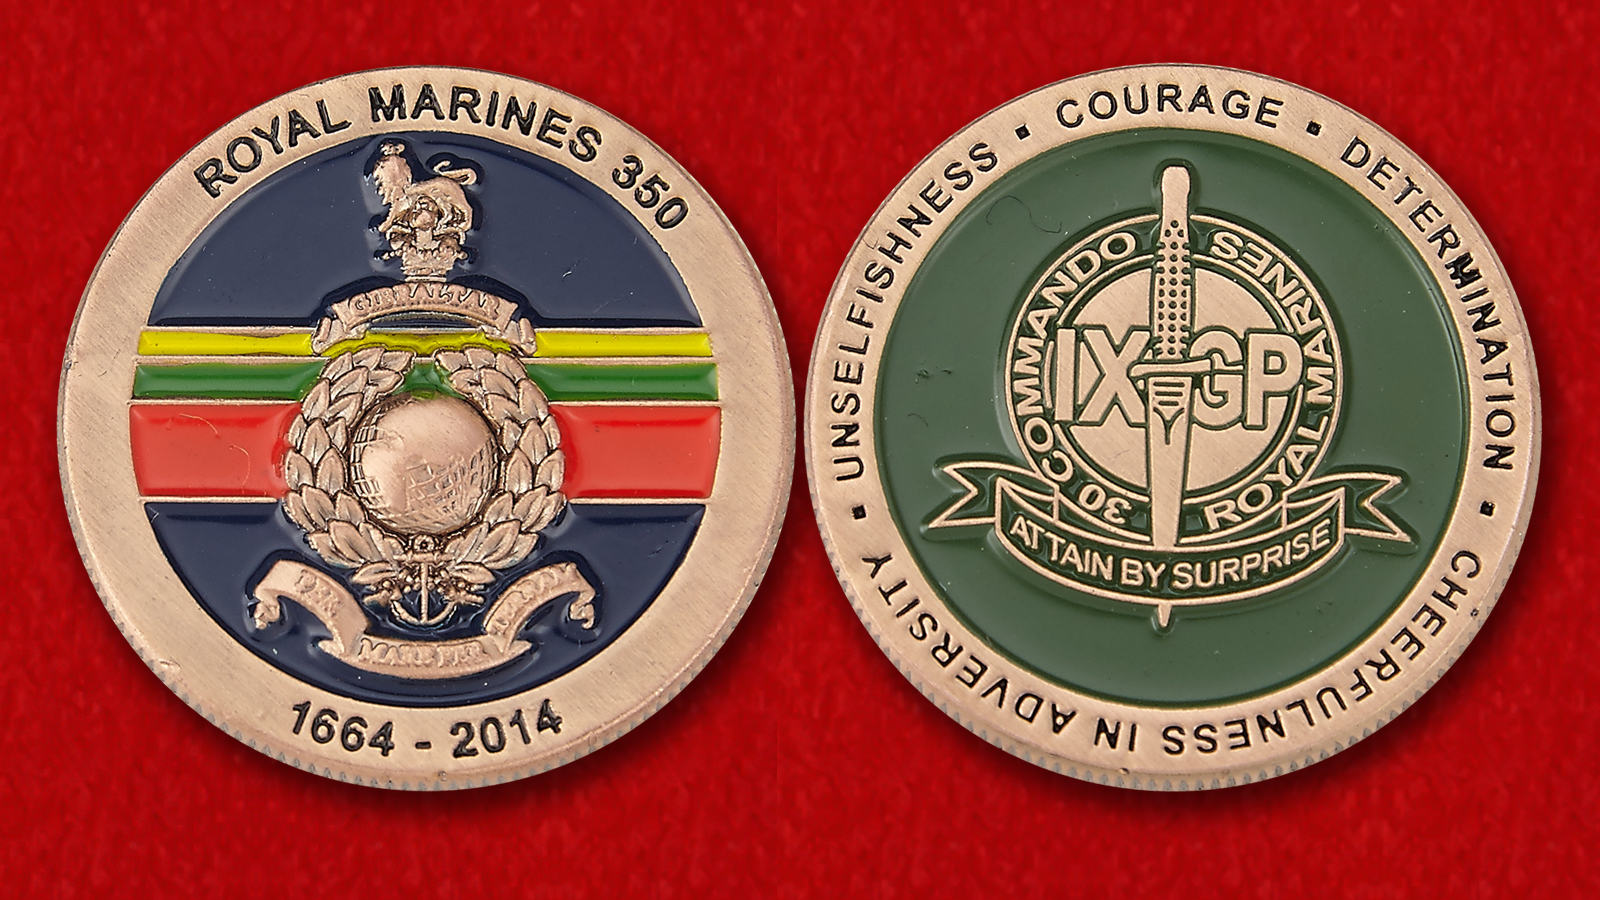 No. 30 Commandos Royal Marines Challenge Coin